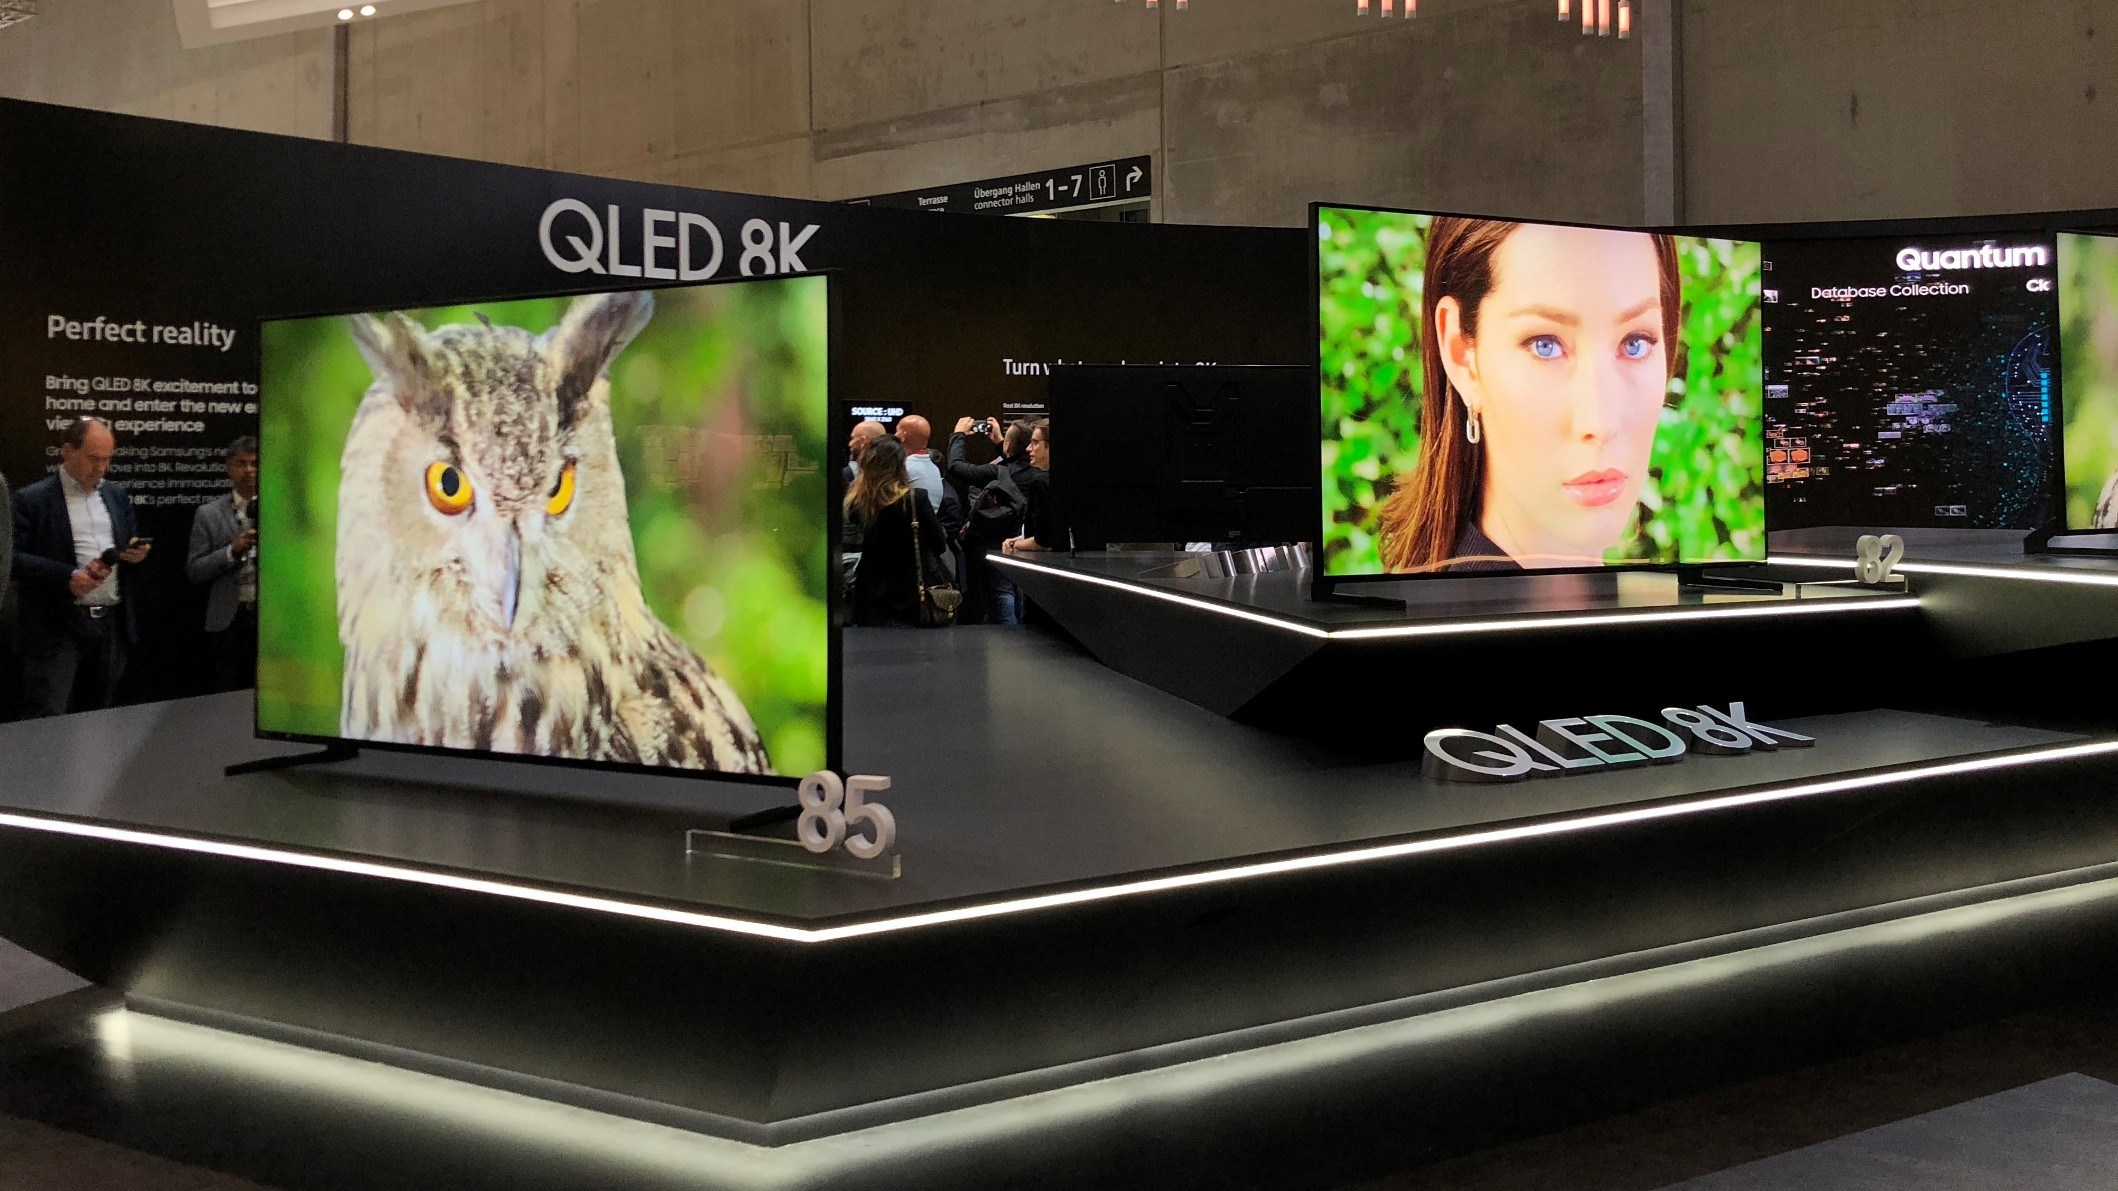 Samsung Announces 8K TVs with AI Upscaling, Low Lag, and